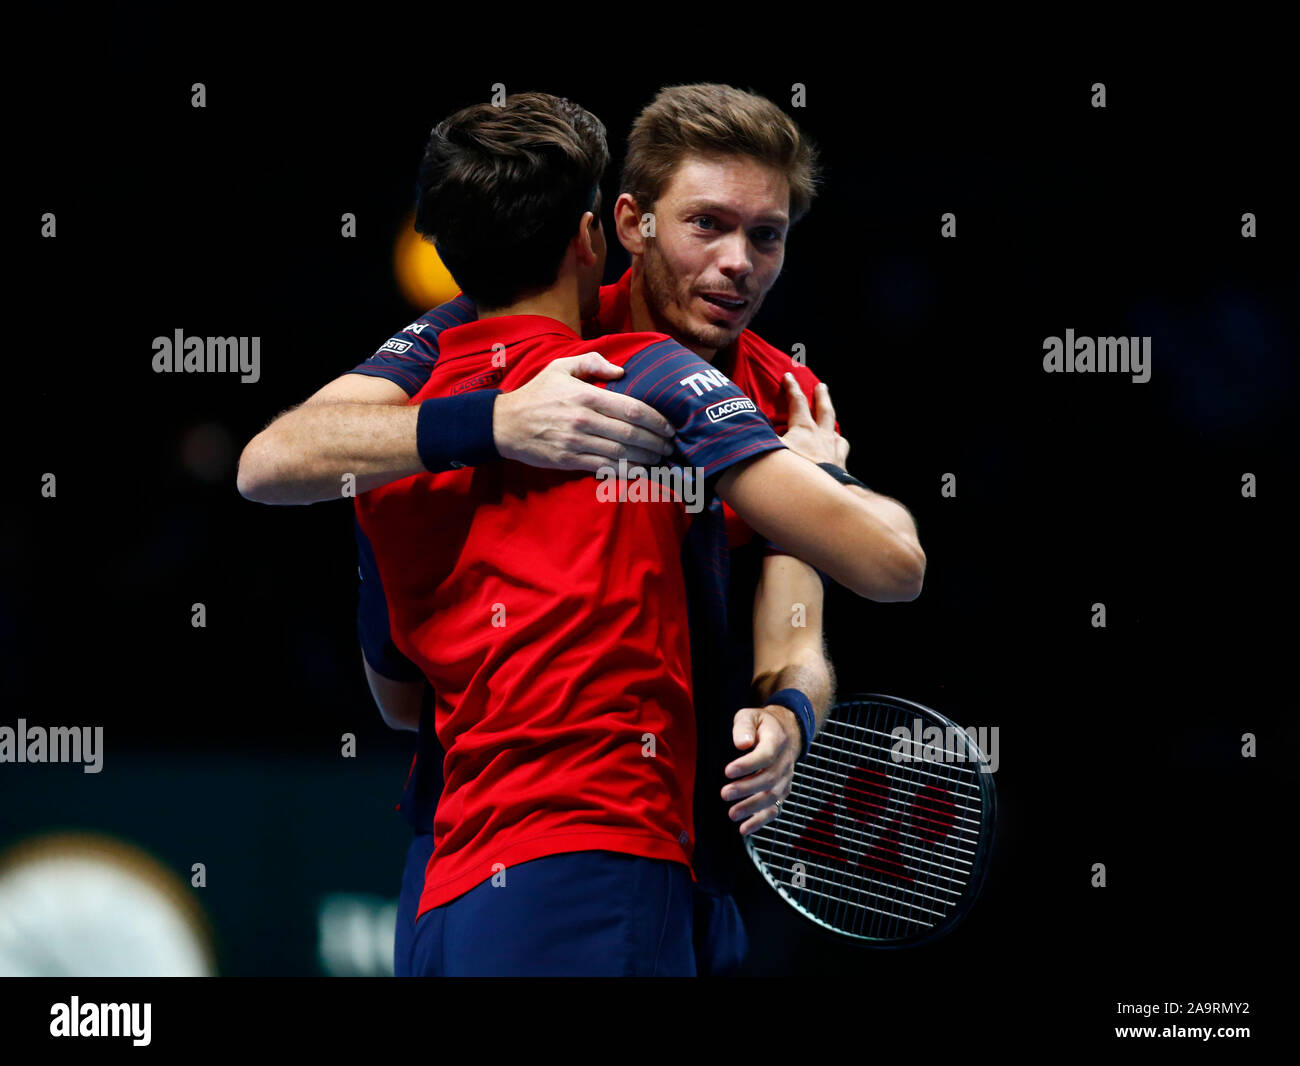 London, UK. 17th Nov 2019.  Pierre-Hughes Herbert and Nicolas Mahut celebrates they win during in action during Doubles Championship Final match Pierre-Hughes Herbert and Nicolas Mahut (FRA) against Raven Klaasen( RSA) and Michael Venus (NZL) International Tennis - Nitto ATP World Tour Finals Day 8 - Tuesday 17th November 2019 - O2 Arena - London Credit: Action Foto Sport/Alamy Live News Stock Photo